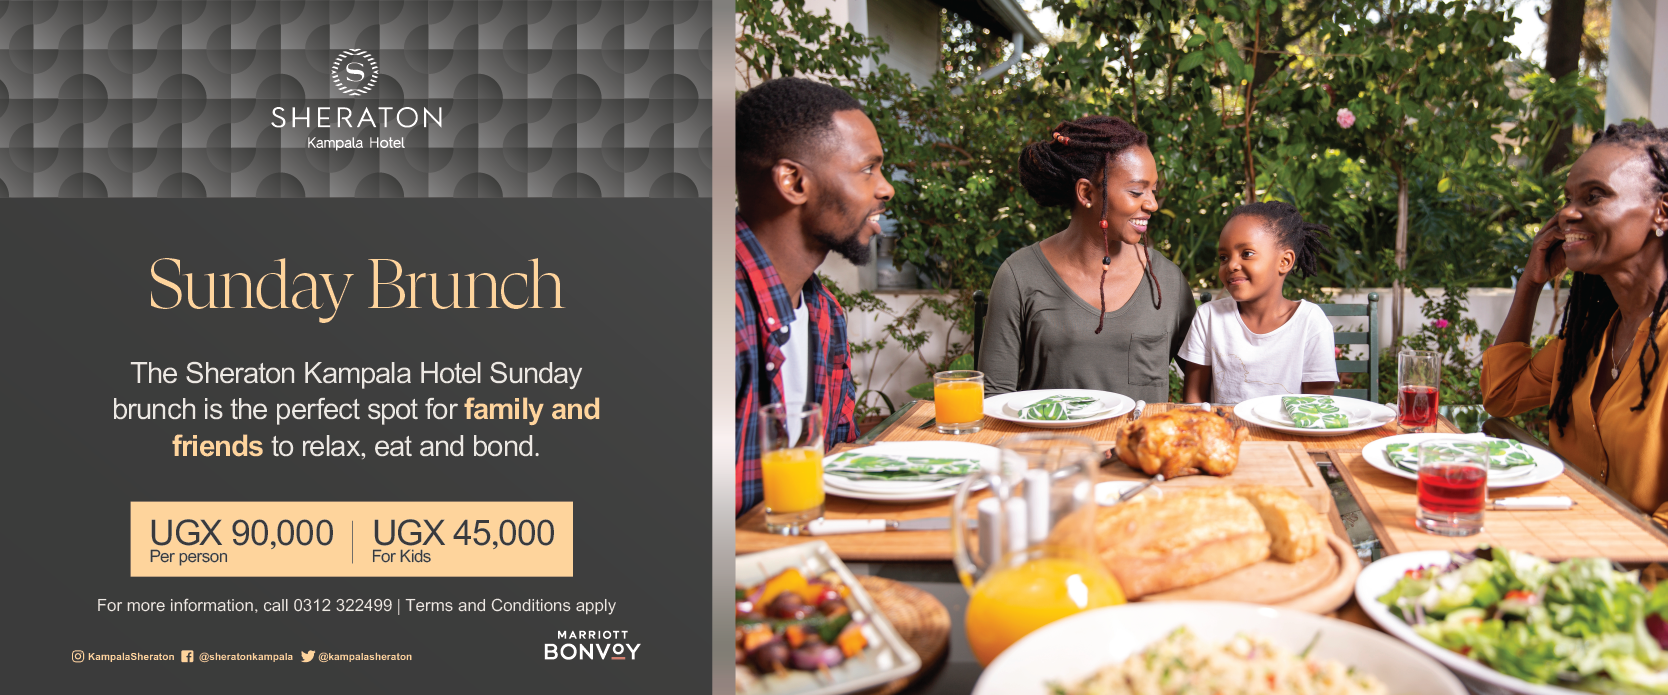 Enjoy a great Sunday brunch at the Sheraton Kampala Hotel